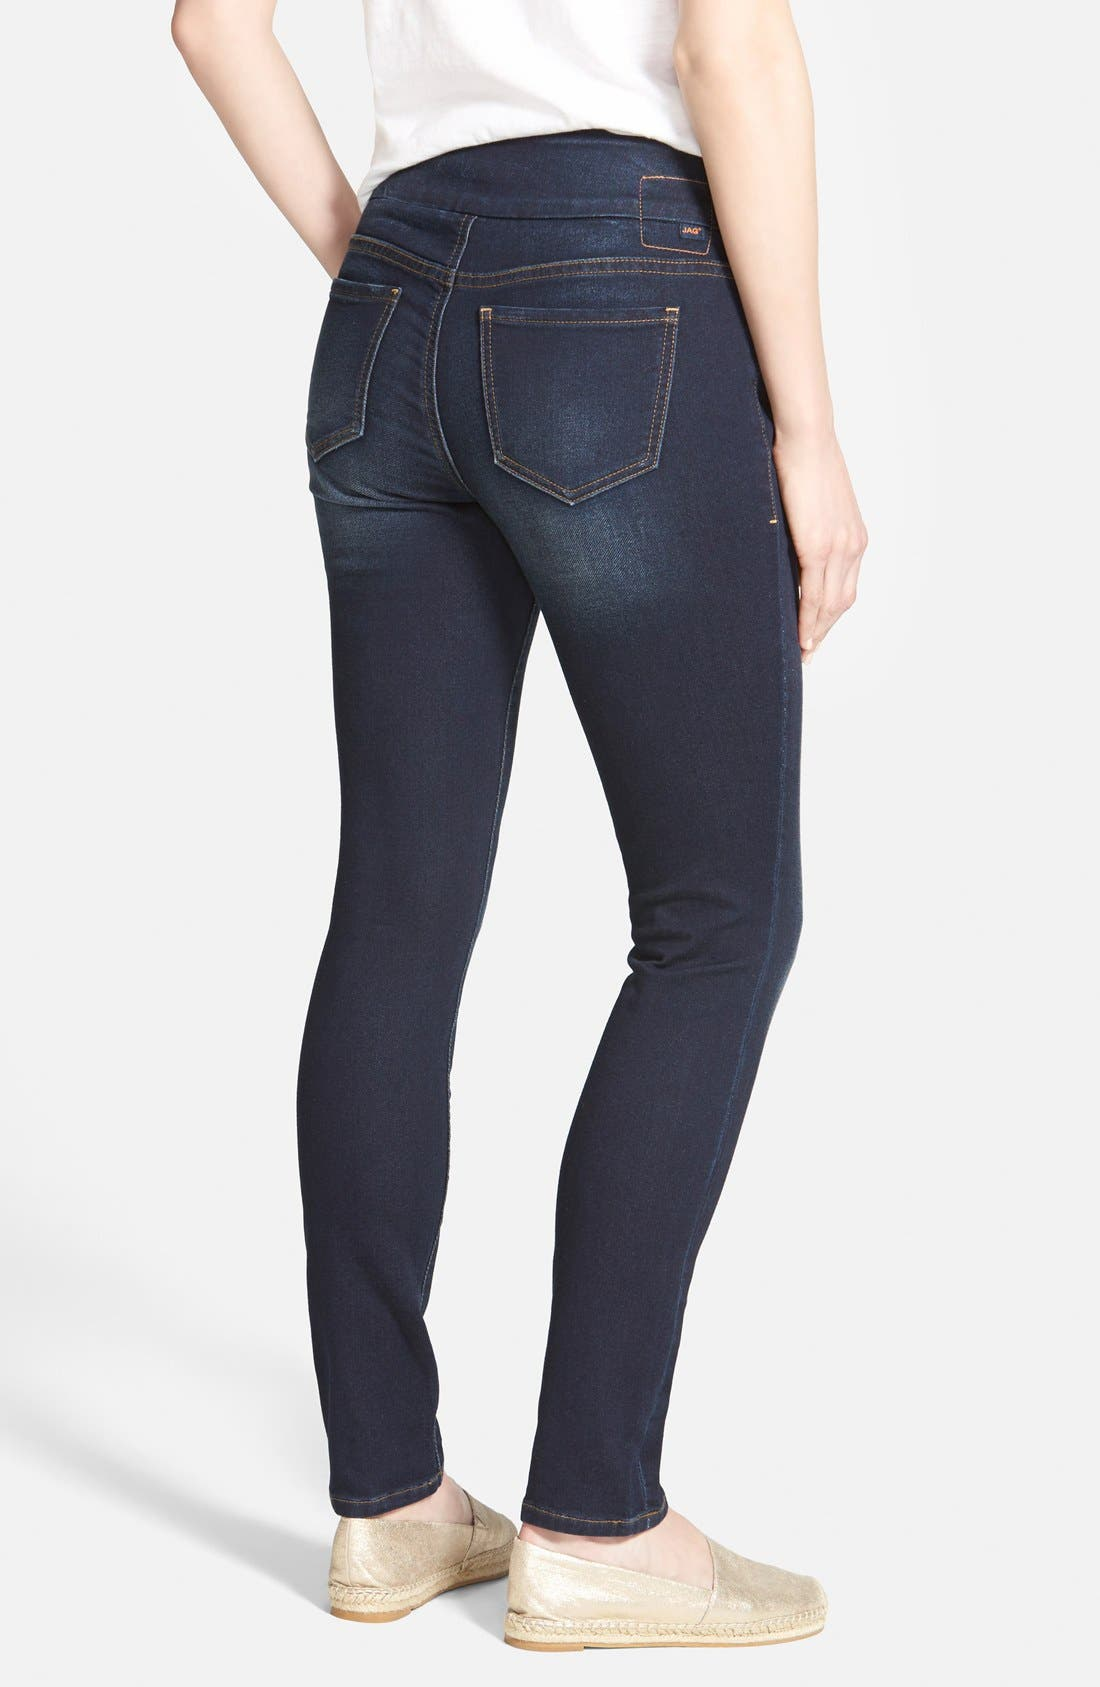 Alternate Image 2  - Jag Jeans 'Nora' Pull-On Stretch Knit Skinny Jeans (Dark Whale) (Petite)